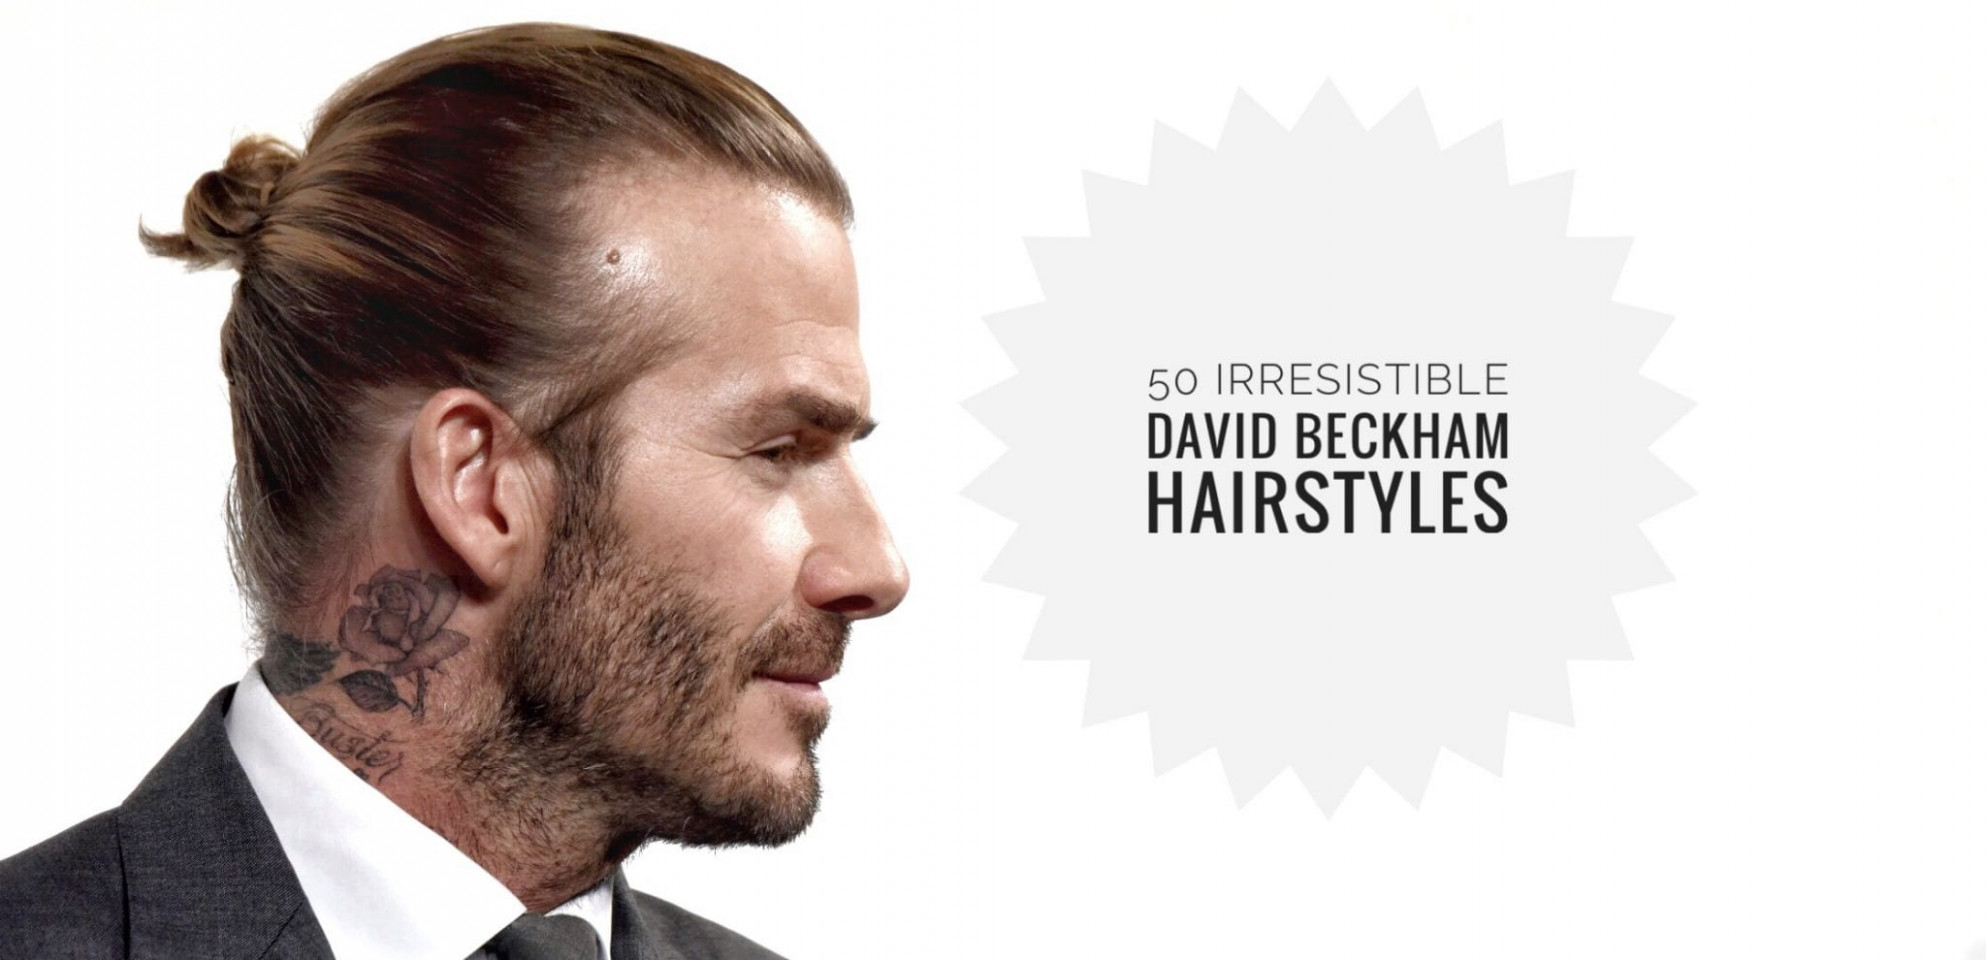 Bend it like beckham or at least cut it like him: 12 hairstyles to